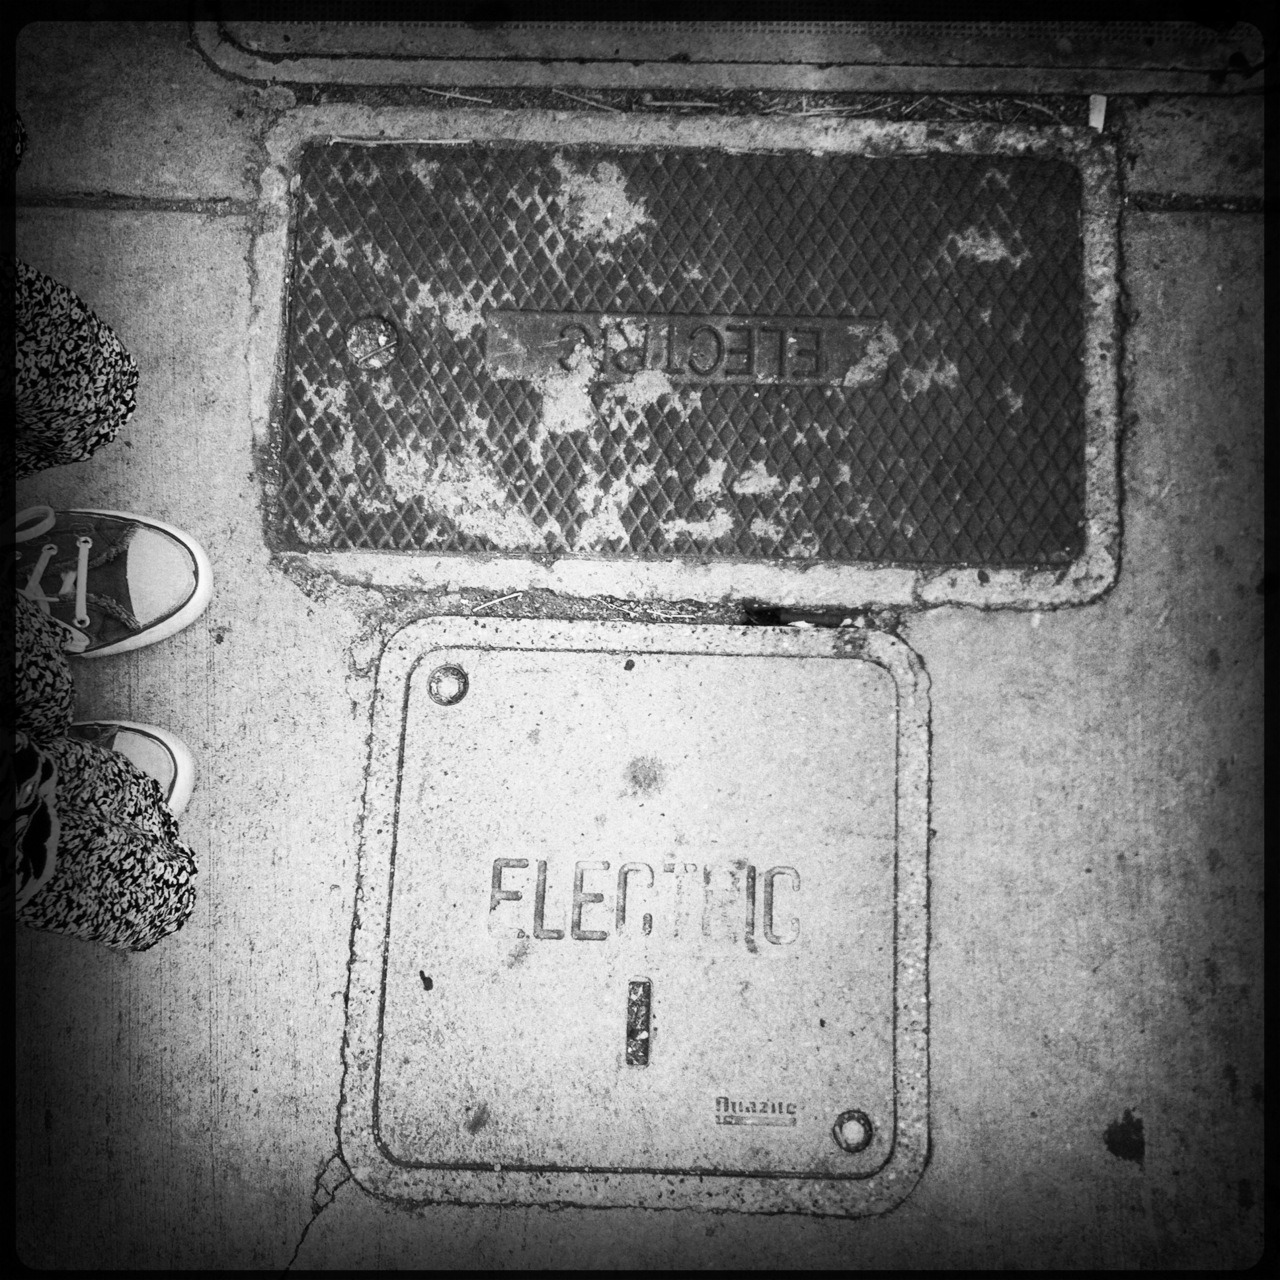 Electric Taken with Hipstamatic, Libatique 73 Lens, Rock BW-11 Film, No Flash.